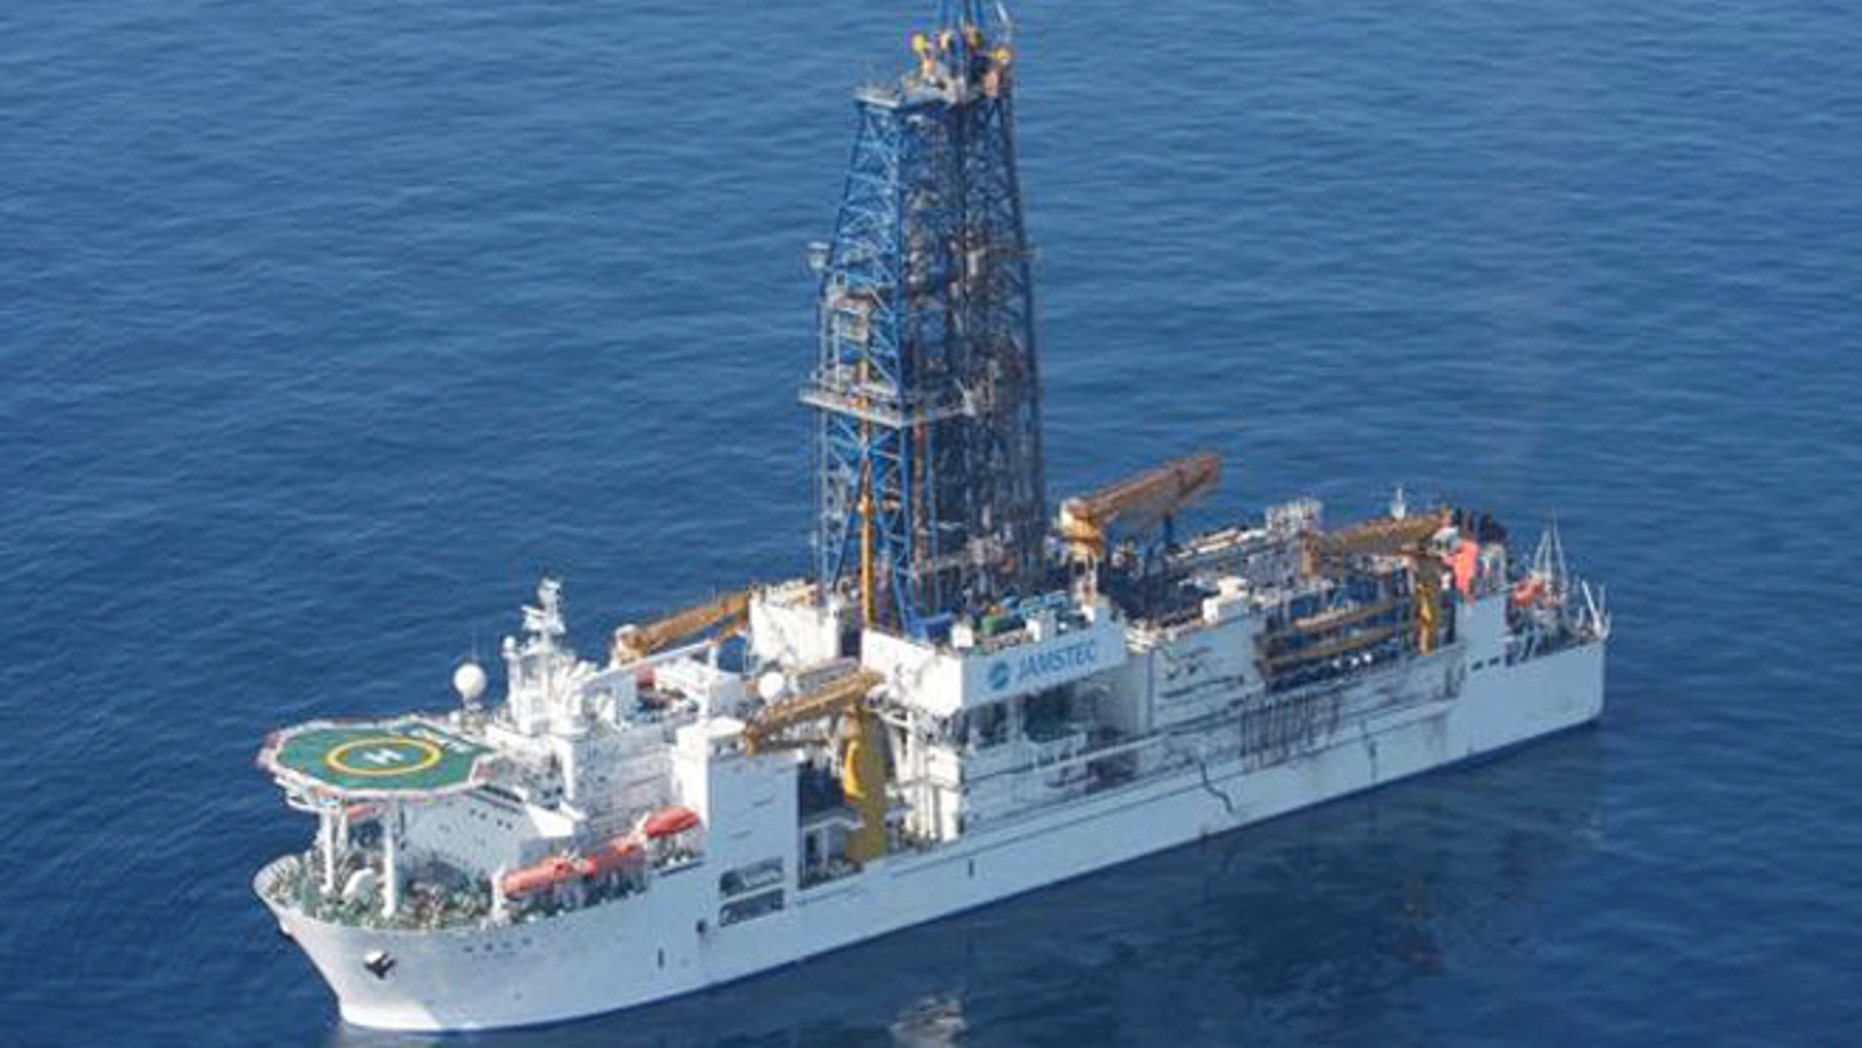 The Chikyu, which set a record by drilling more than 6,926 feet (2,111 meters) beneath the seafloor, deeper than ever before.